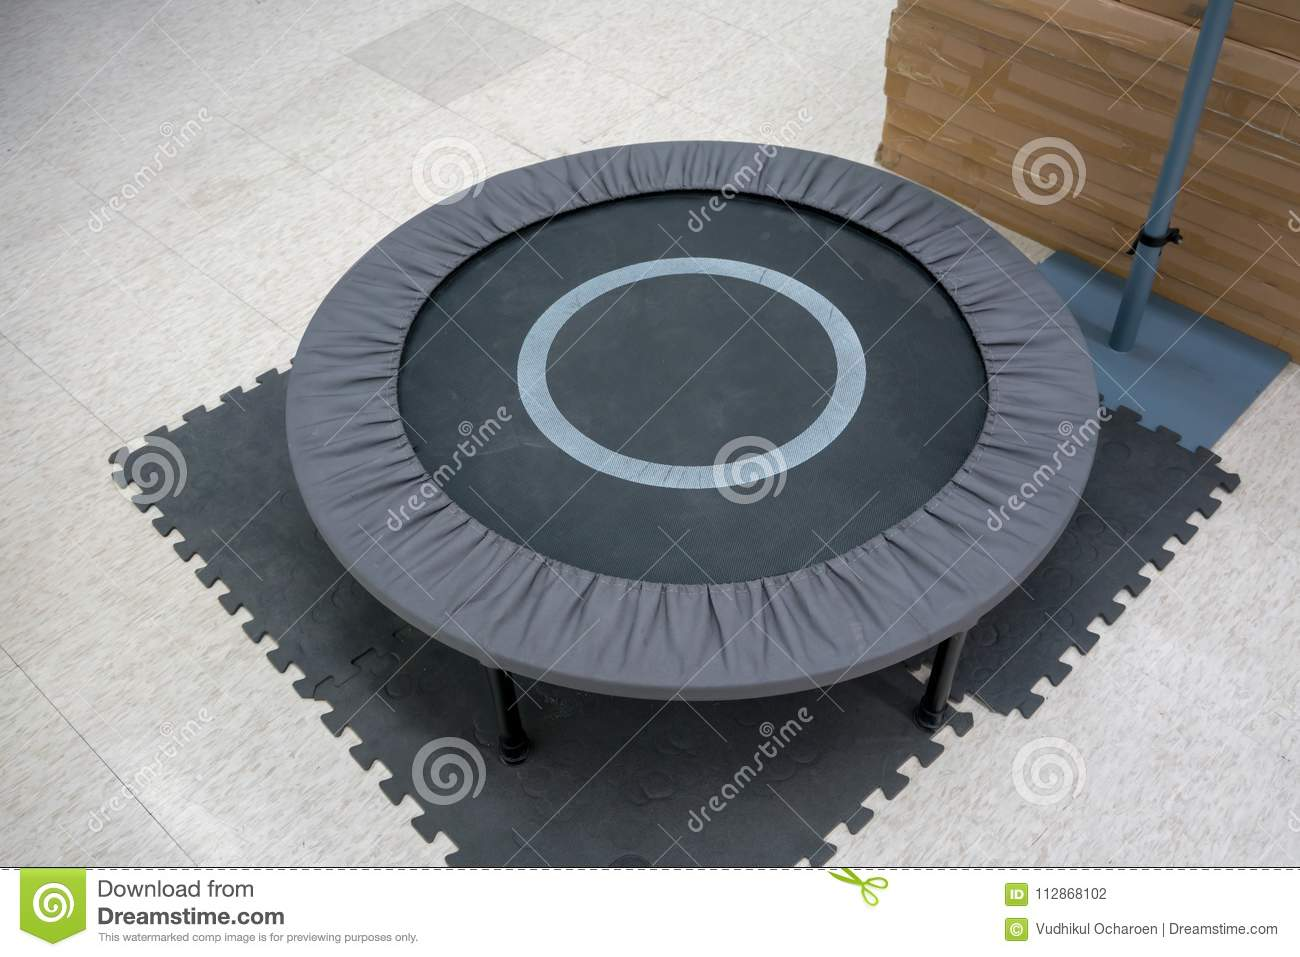 Small grey and black fitness trampolin on foam sheet